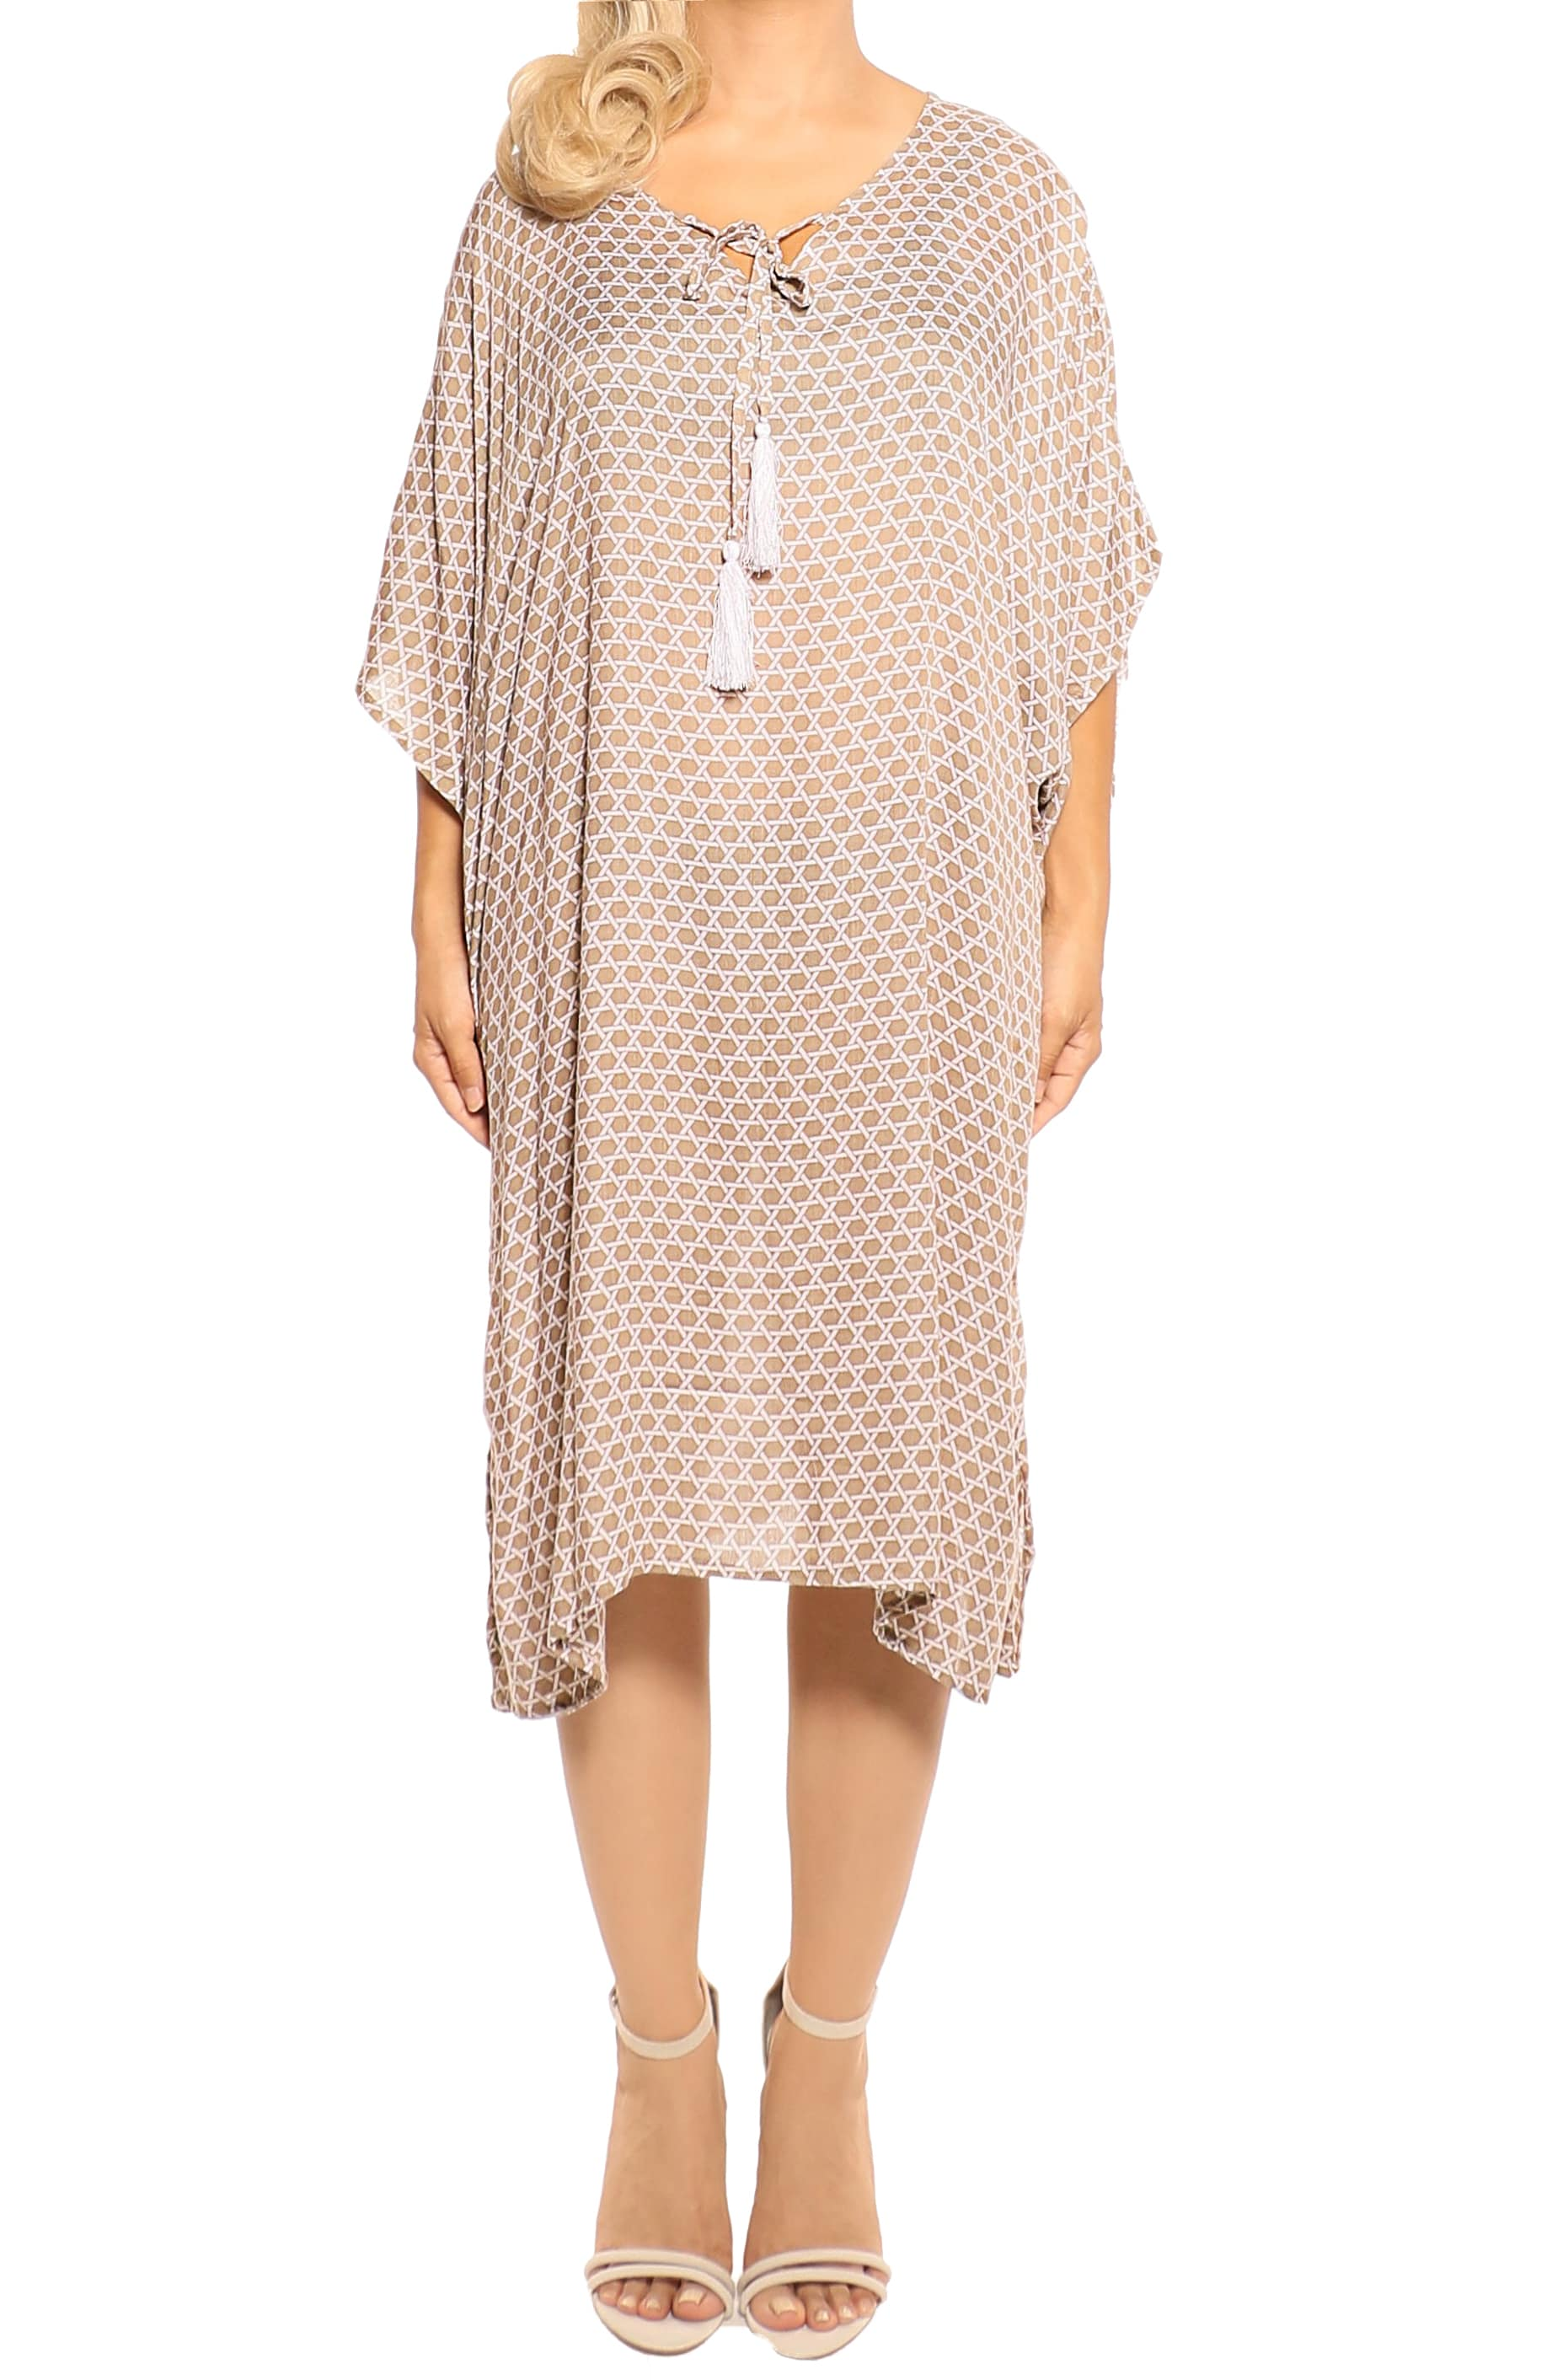 Mocha Kaftan Cover Up Dress - ESMERALDA TOMSON Boho Resort Wear